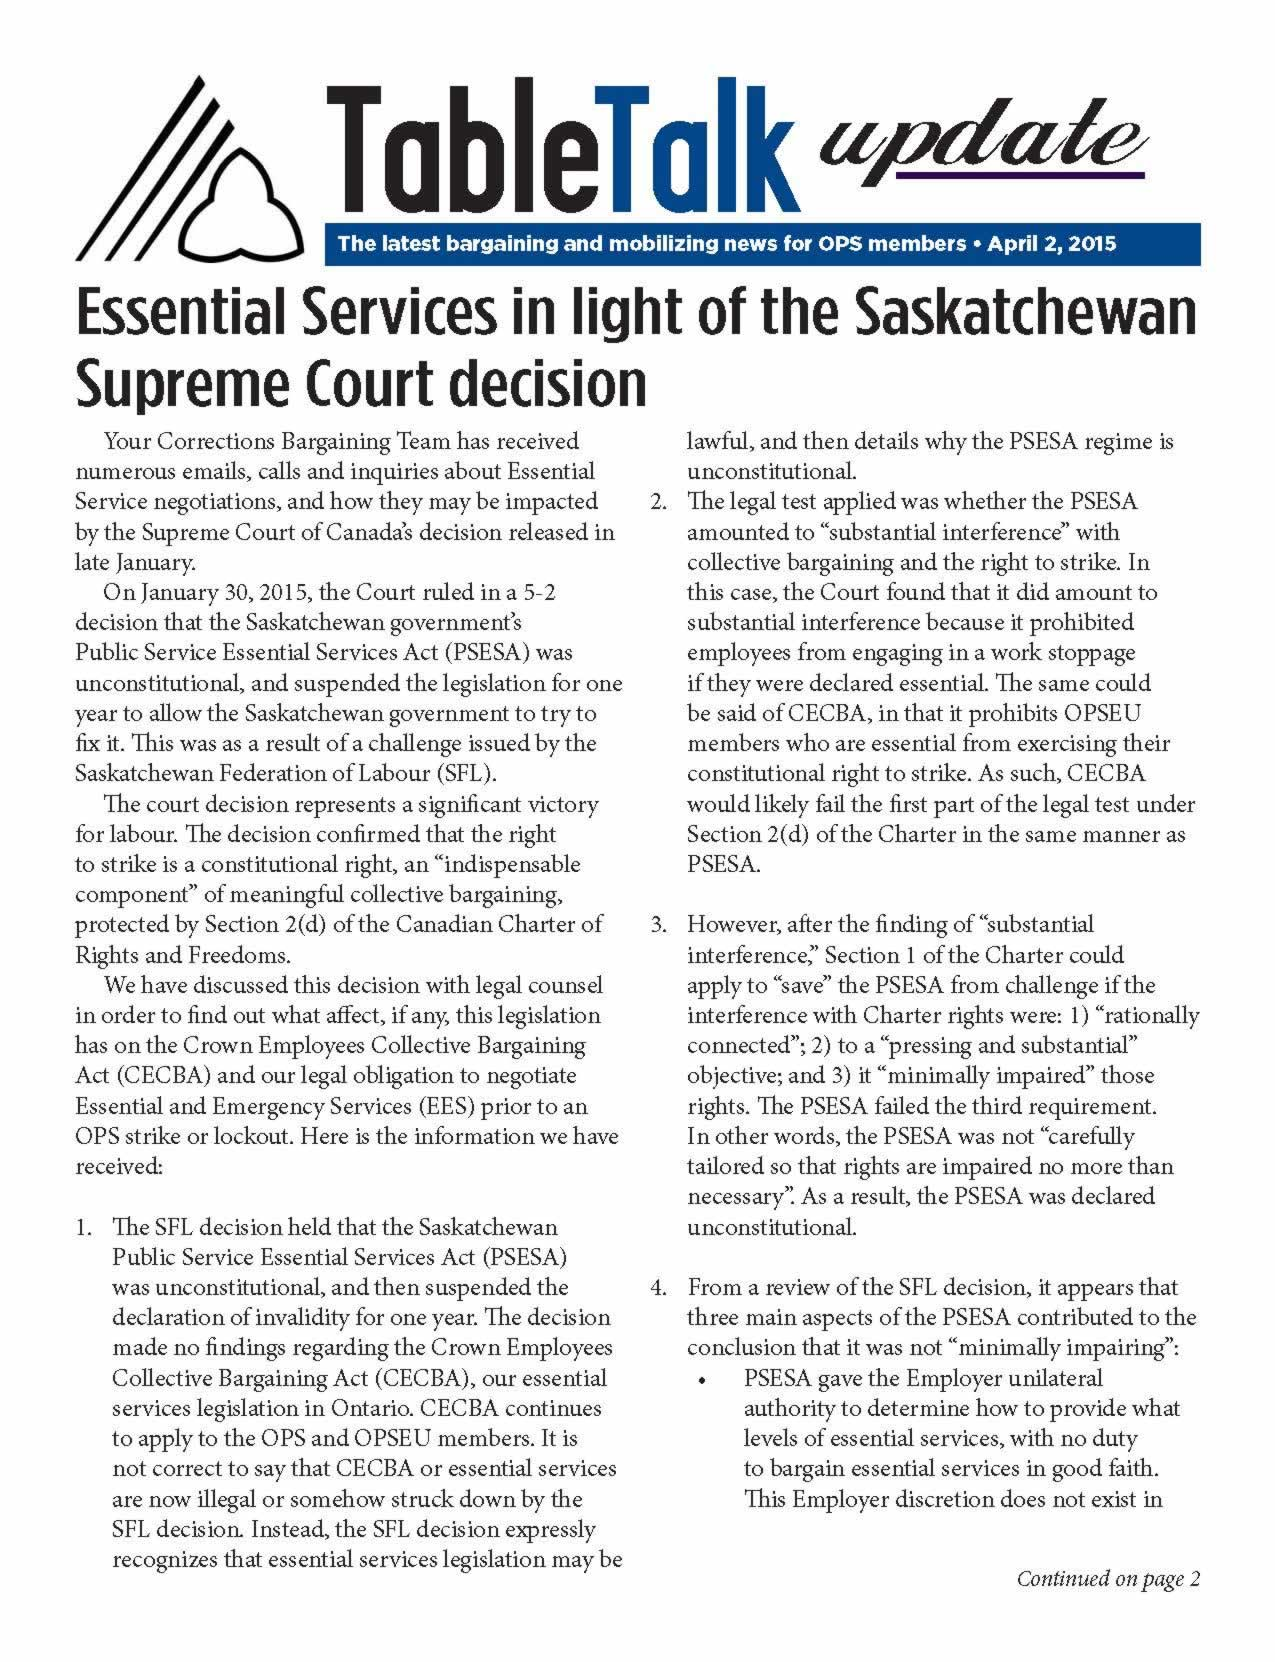 Table Talk Update: Essential Services in light of the Saskatchewan Supreme Court decision